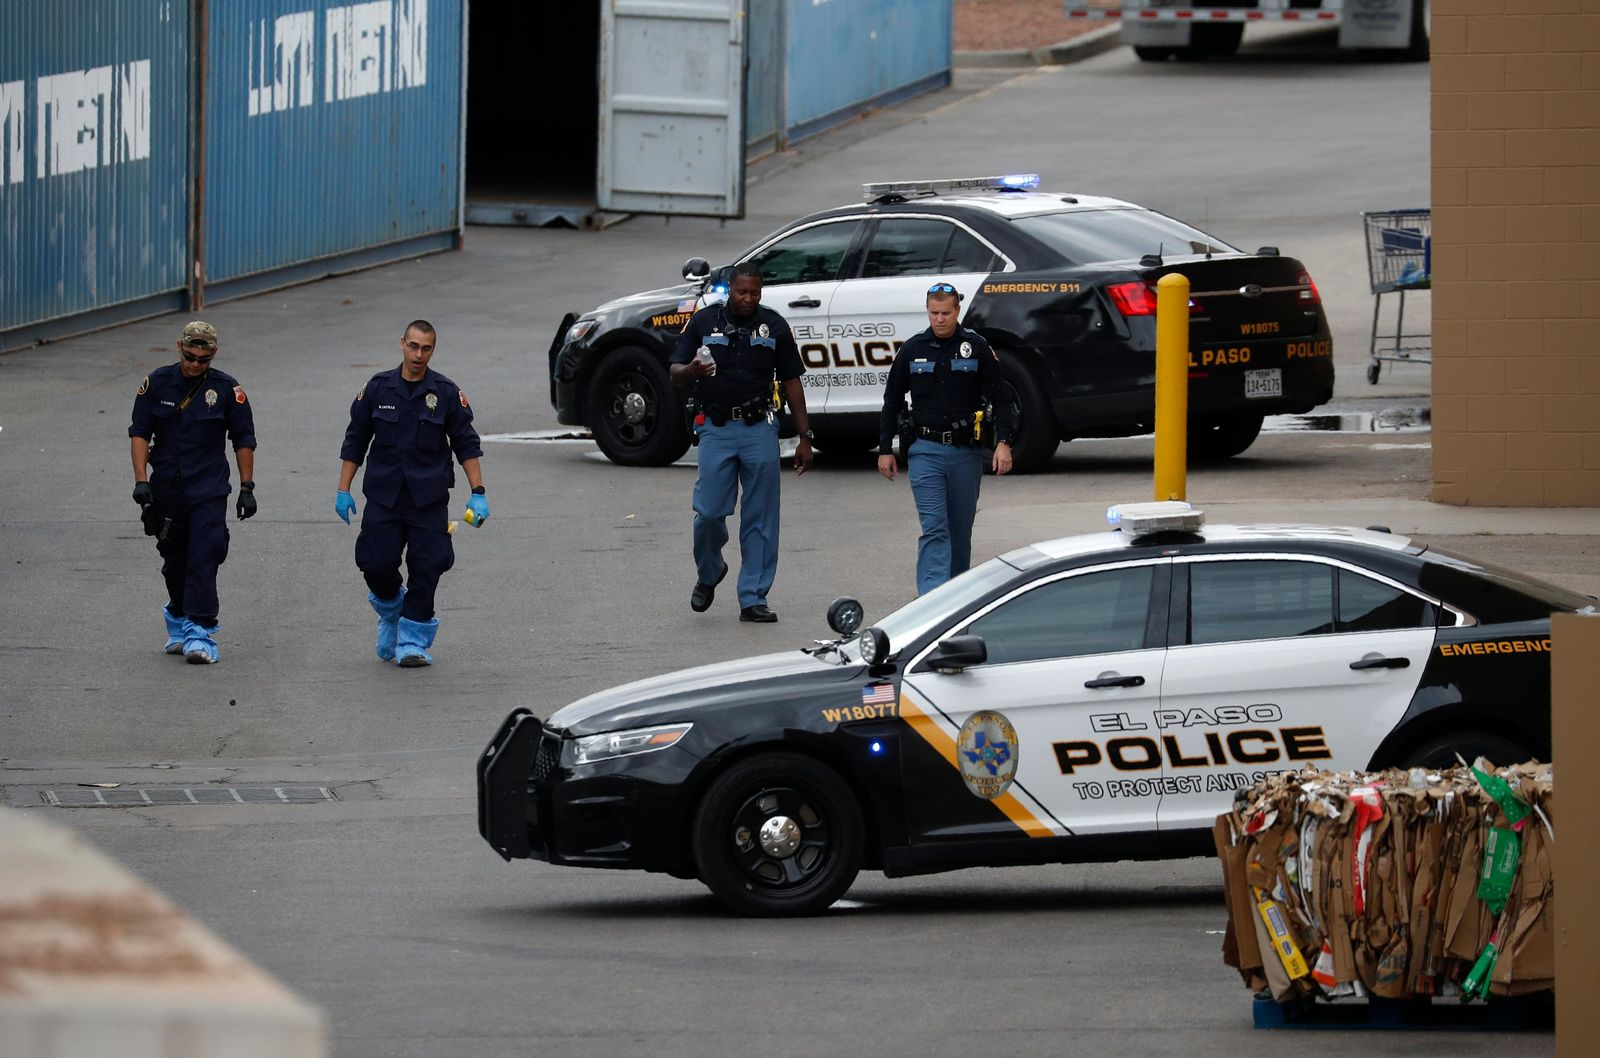 Police officers walk behind a Walmart at the scene of a mass shooting at a shopping complex Tuesday, Aug. 6, 2019, in El Paso, Texas. Patrick Crusius, 21, opened fire Saturday at the mall that largely caters to the local Mexican-American community. (AP Photo/John Locher)